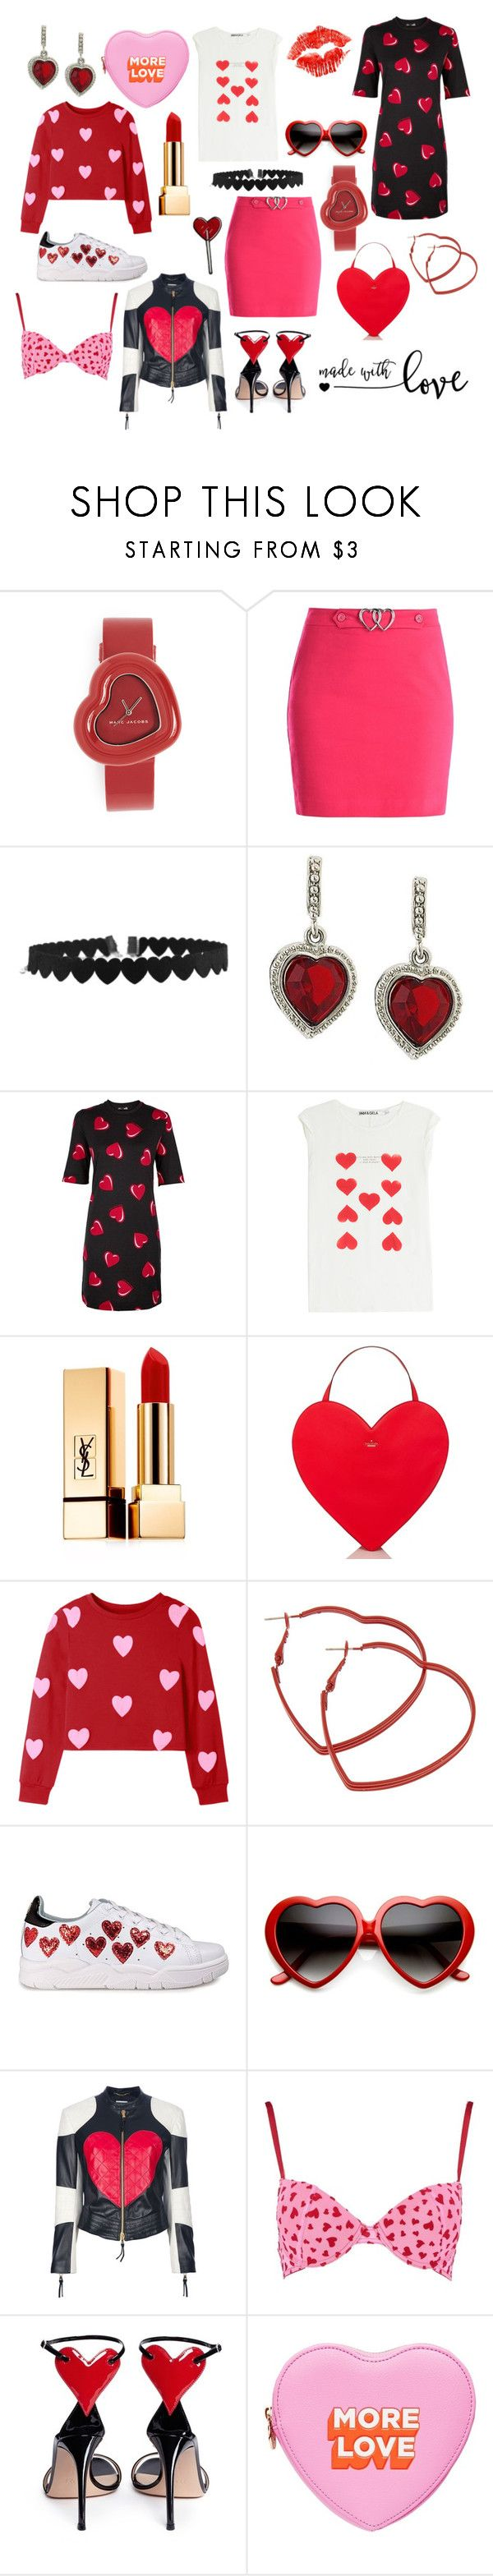 """valentine's day"" by lizzynupa ❤ liked on Polyvore featuring Marc Jacobs, Love Moschino, 1928, Pam & Gela, Yves Saint Laurent, Kate Spade, Chiara Ferragni, Moschino, Pink and red"